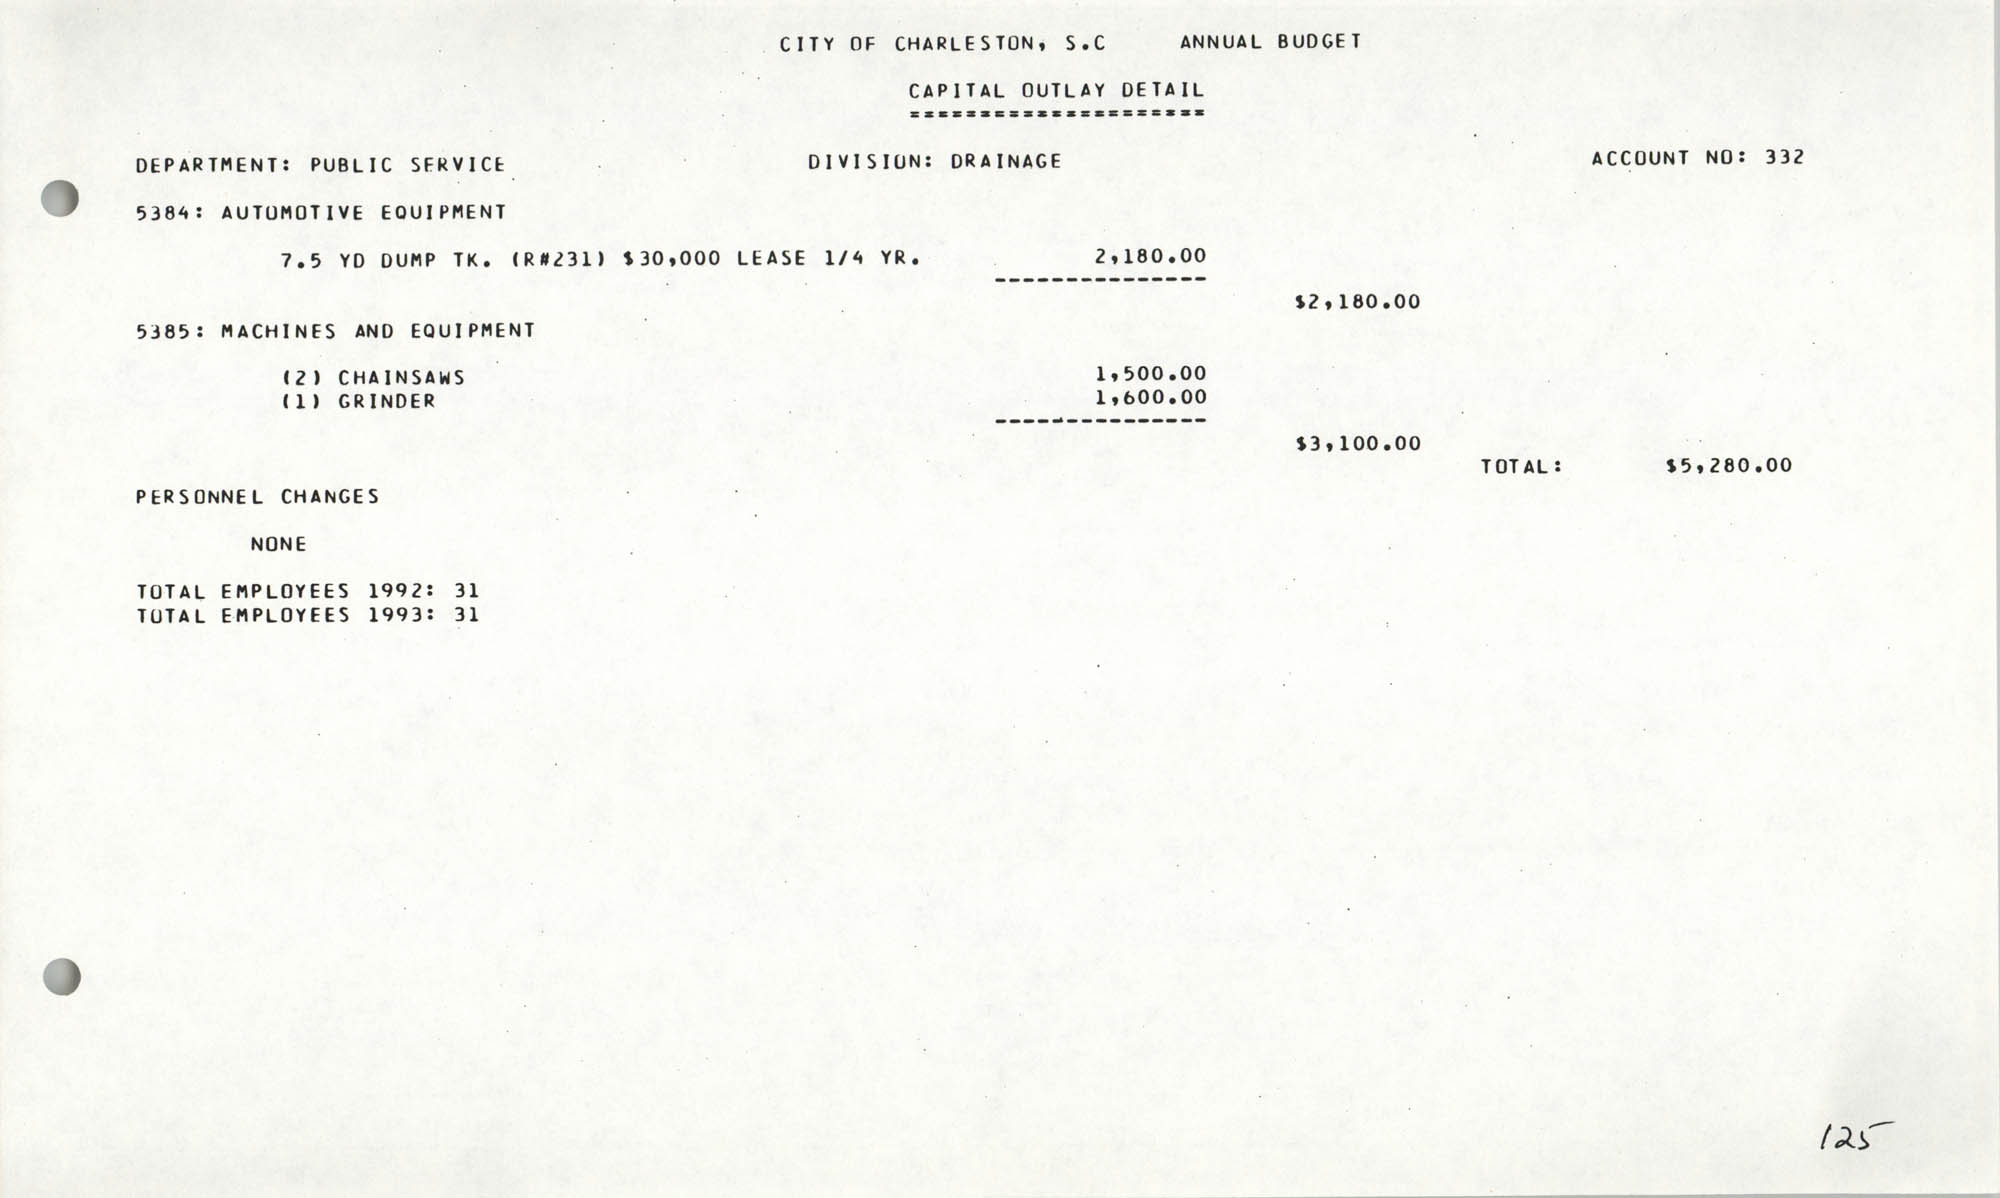 The City Council of Charleston, South Carolina, 1993 Budget, Page 125